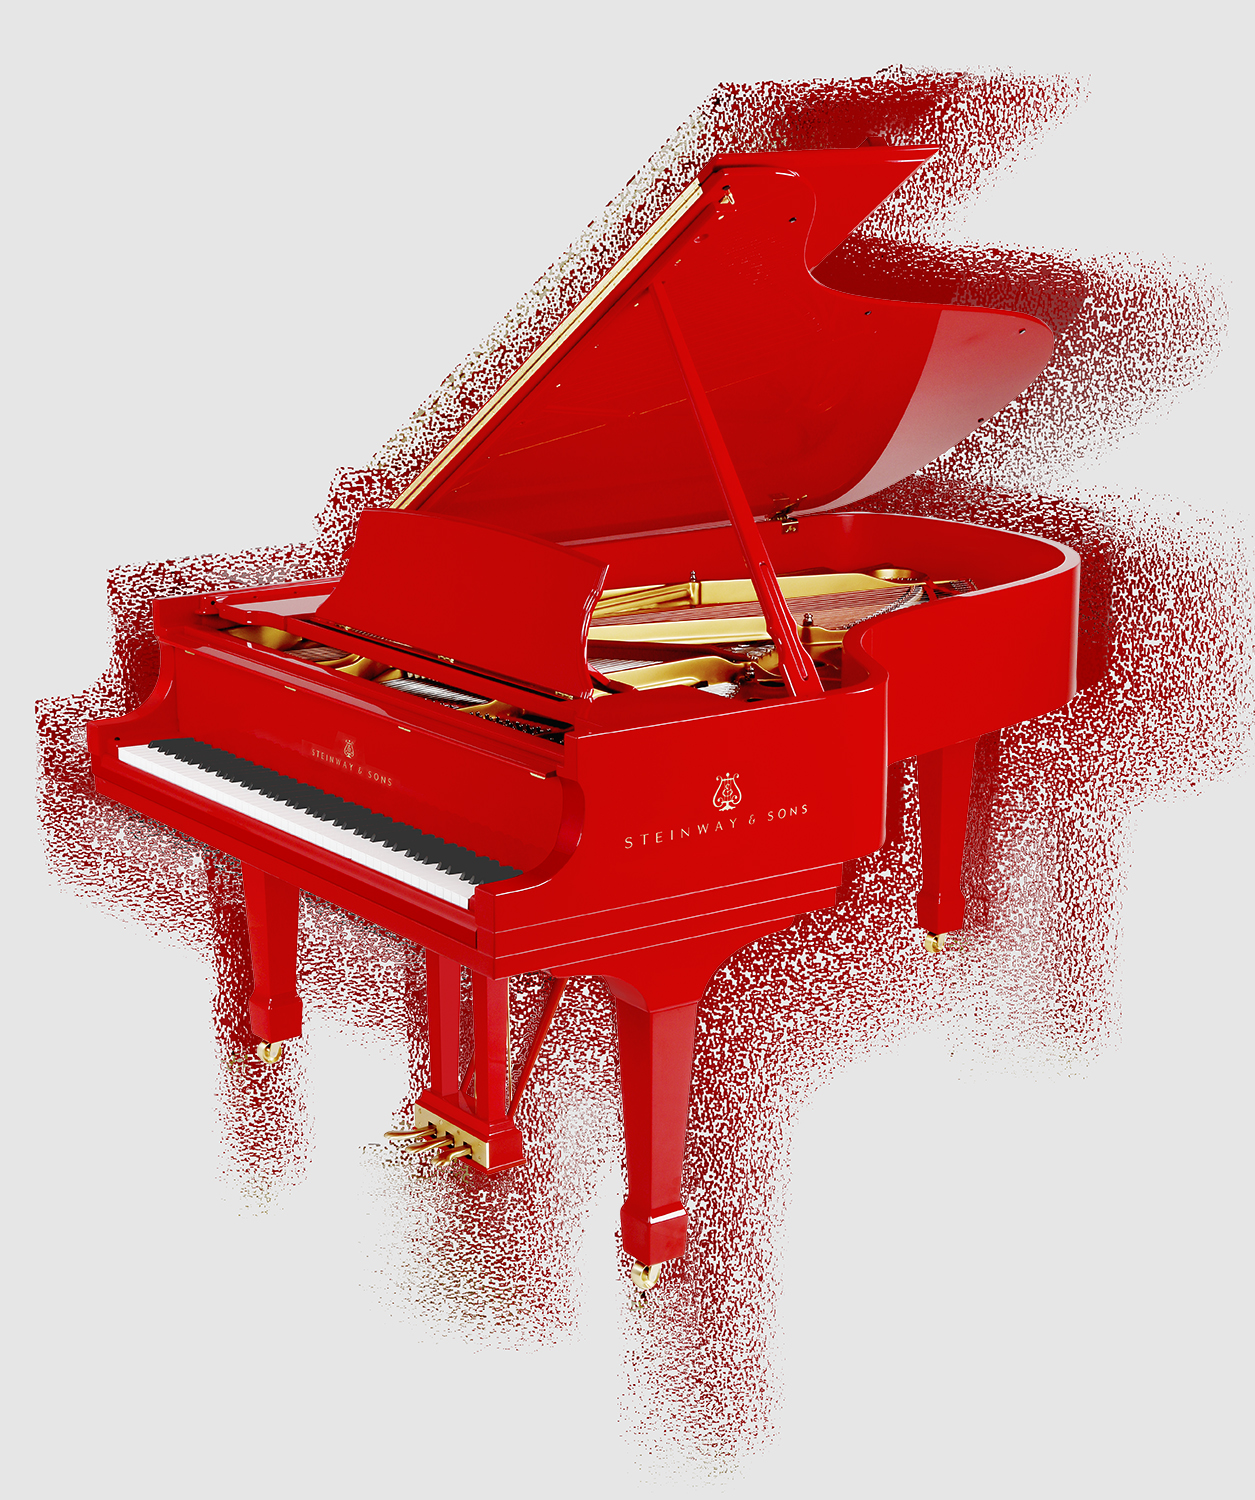 Red Piano SpecalXXX copy copy.jpg